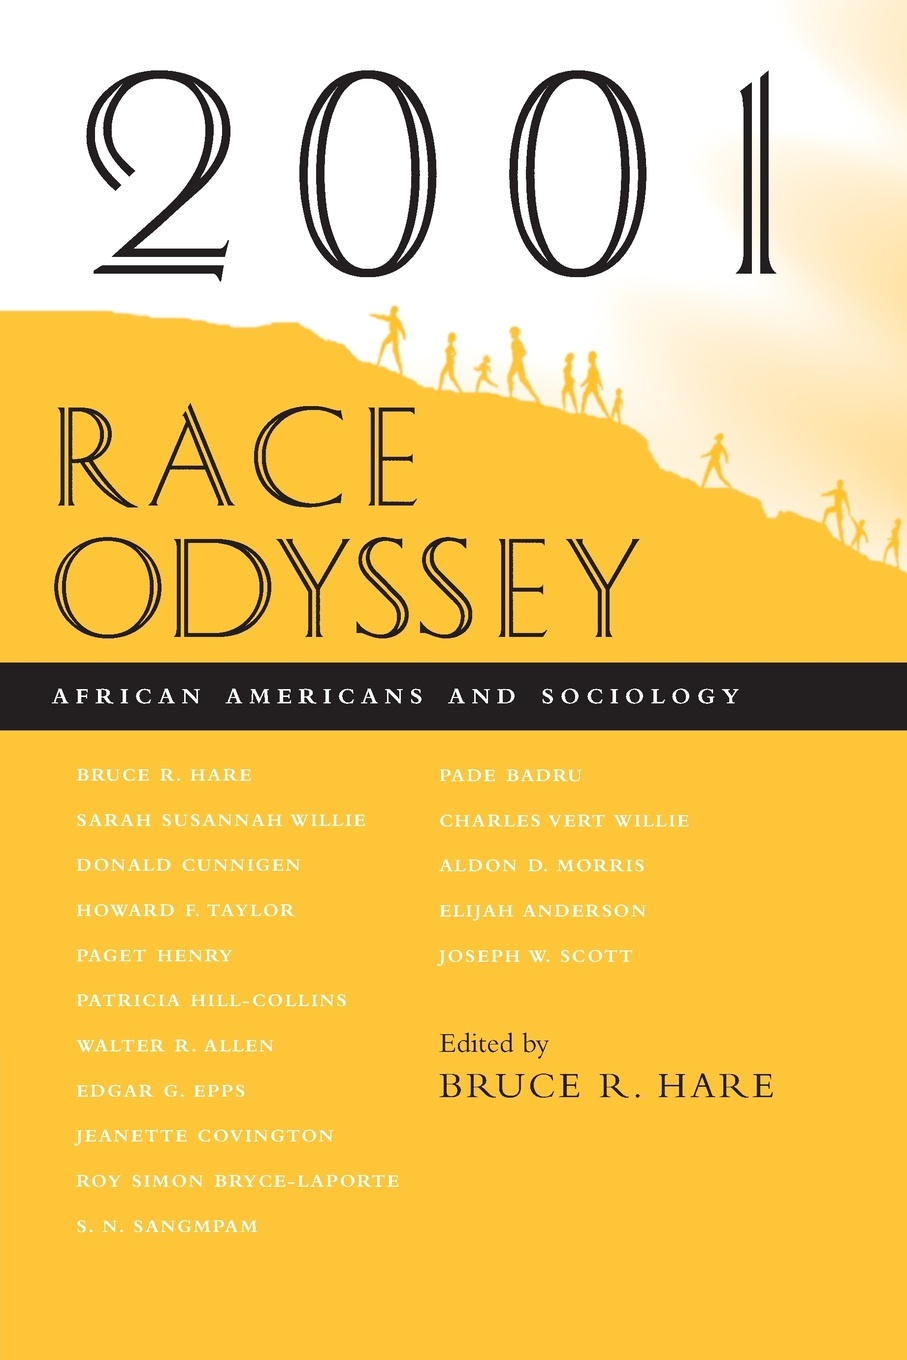 Bruce R Hare 2001 Race Odyssey. African Americans and Sociology the vintage book of african american poetry